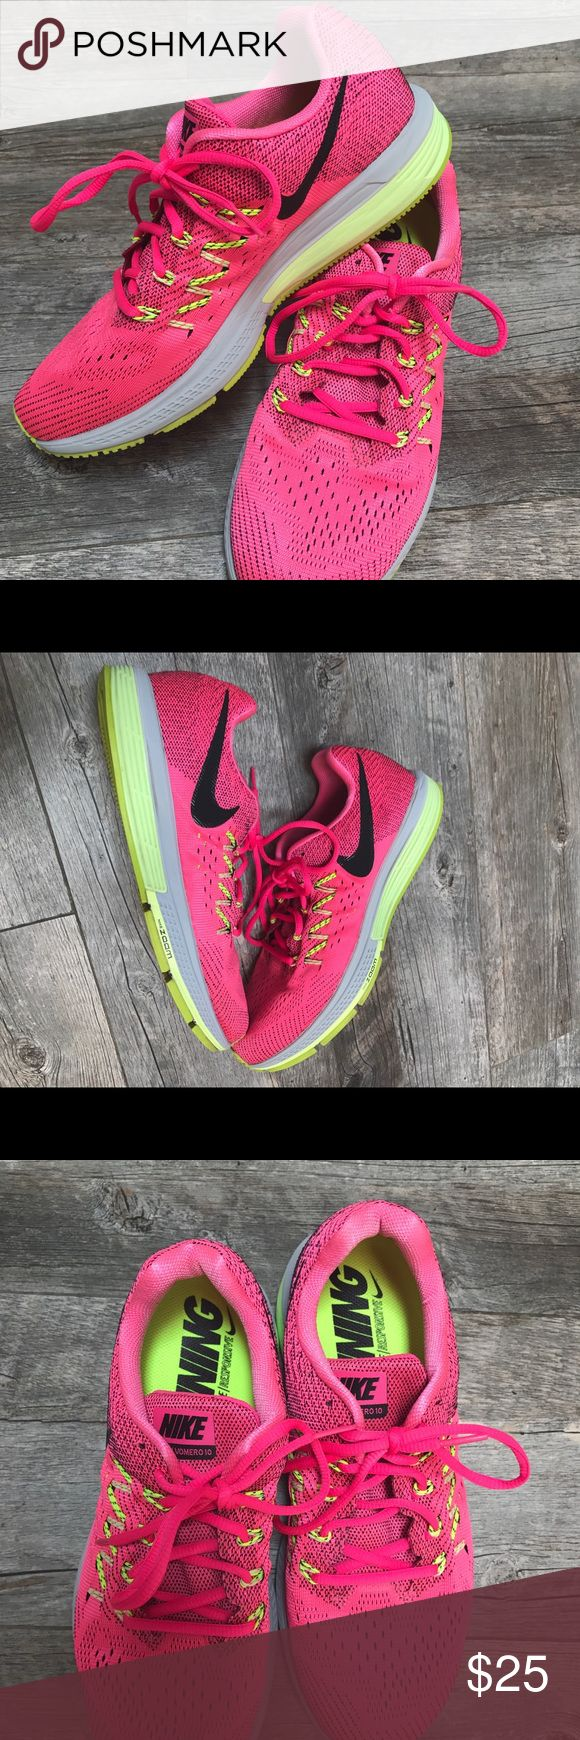 Nike Vomero running shoes. Great condition! Women's Nike Vomero 10. This is one of Nike's most cushioned running shoe. Great for long distance runs! Only minor wear on the ball of the bottom of the shoe. Unworn insoles. Nike Shoes Sneakers